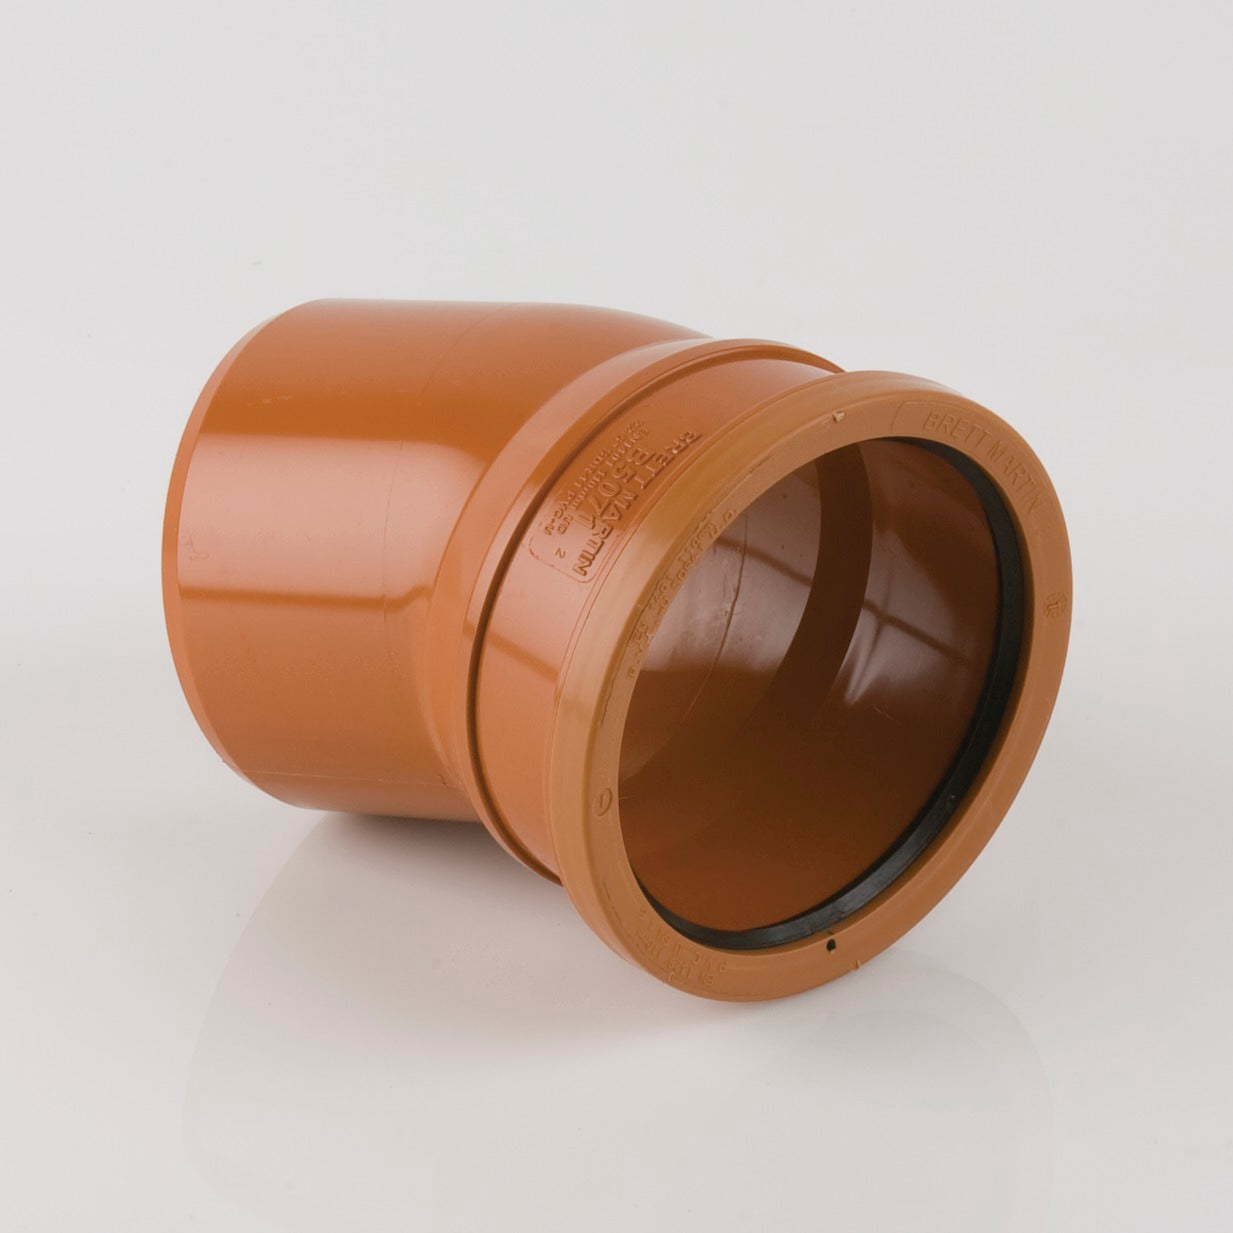 22.5 Degrees 110mm Single Socket Pipe Bend (Terracotta Orange)